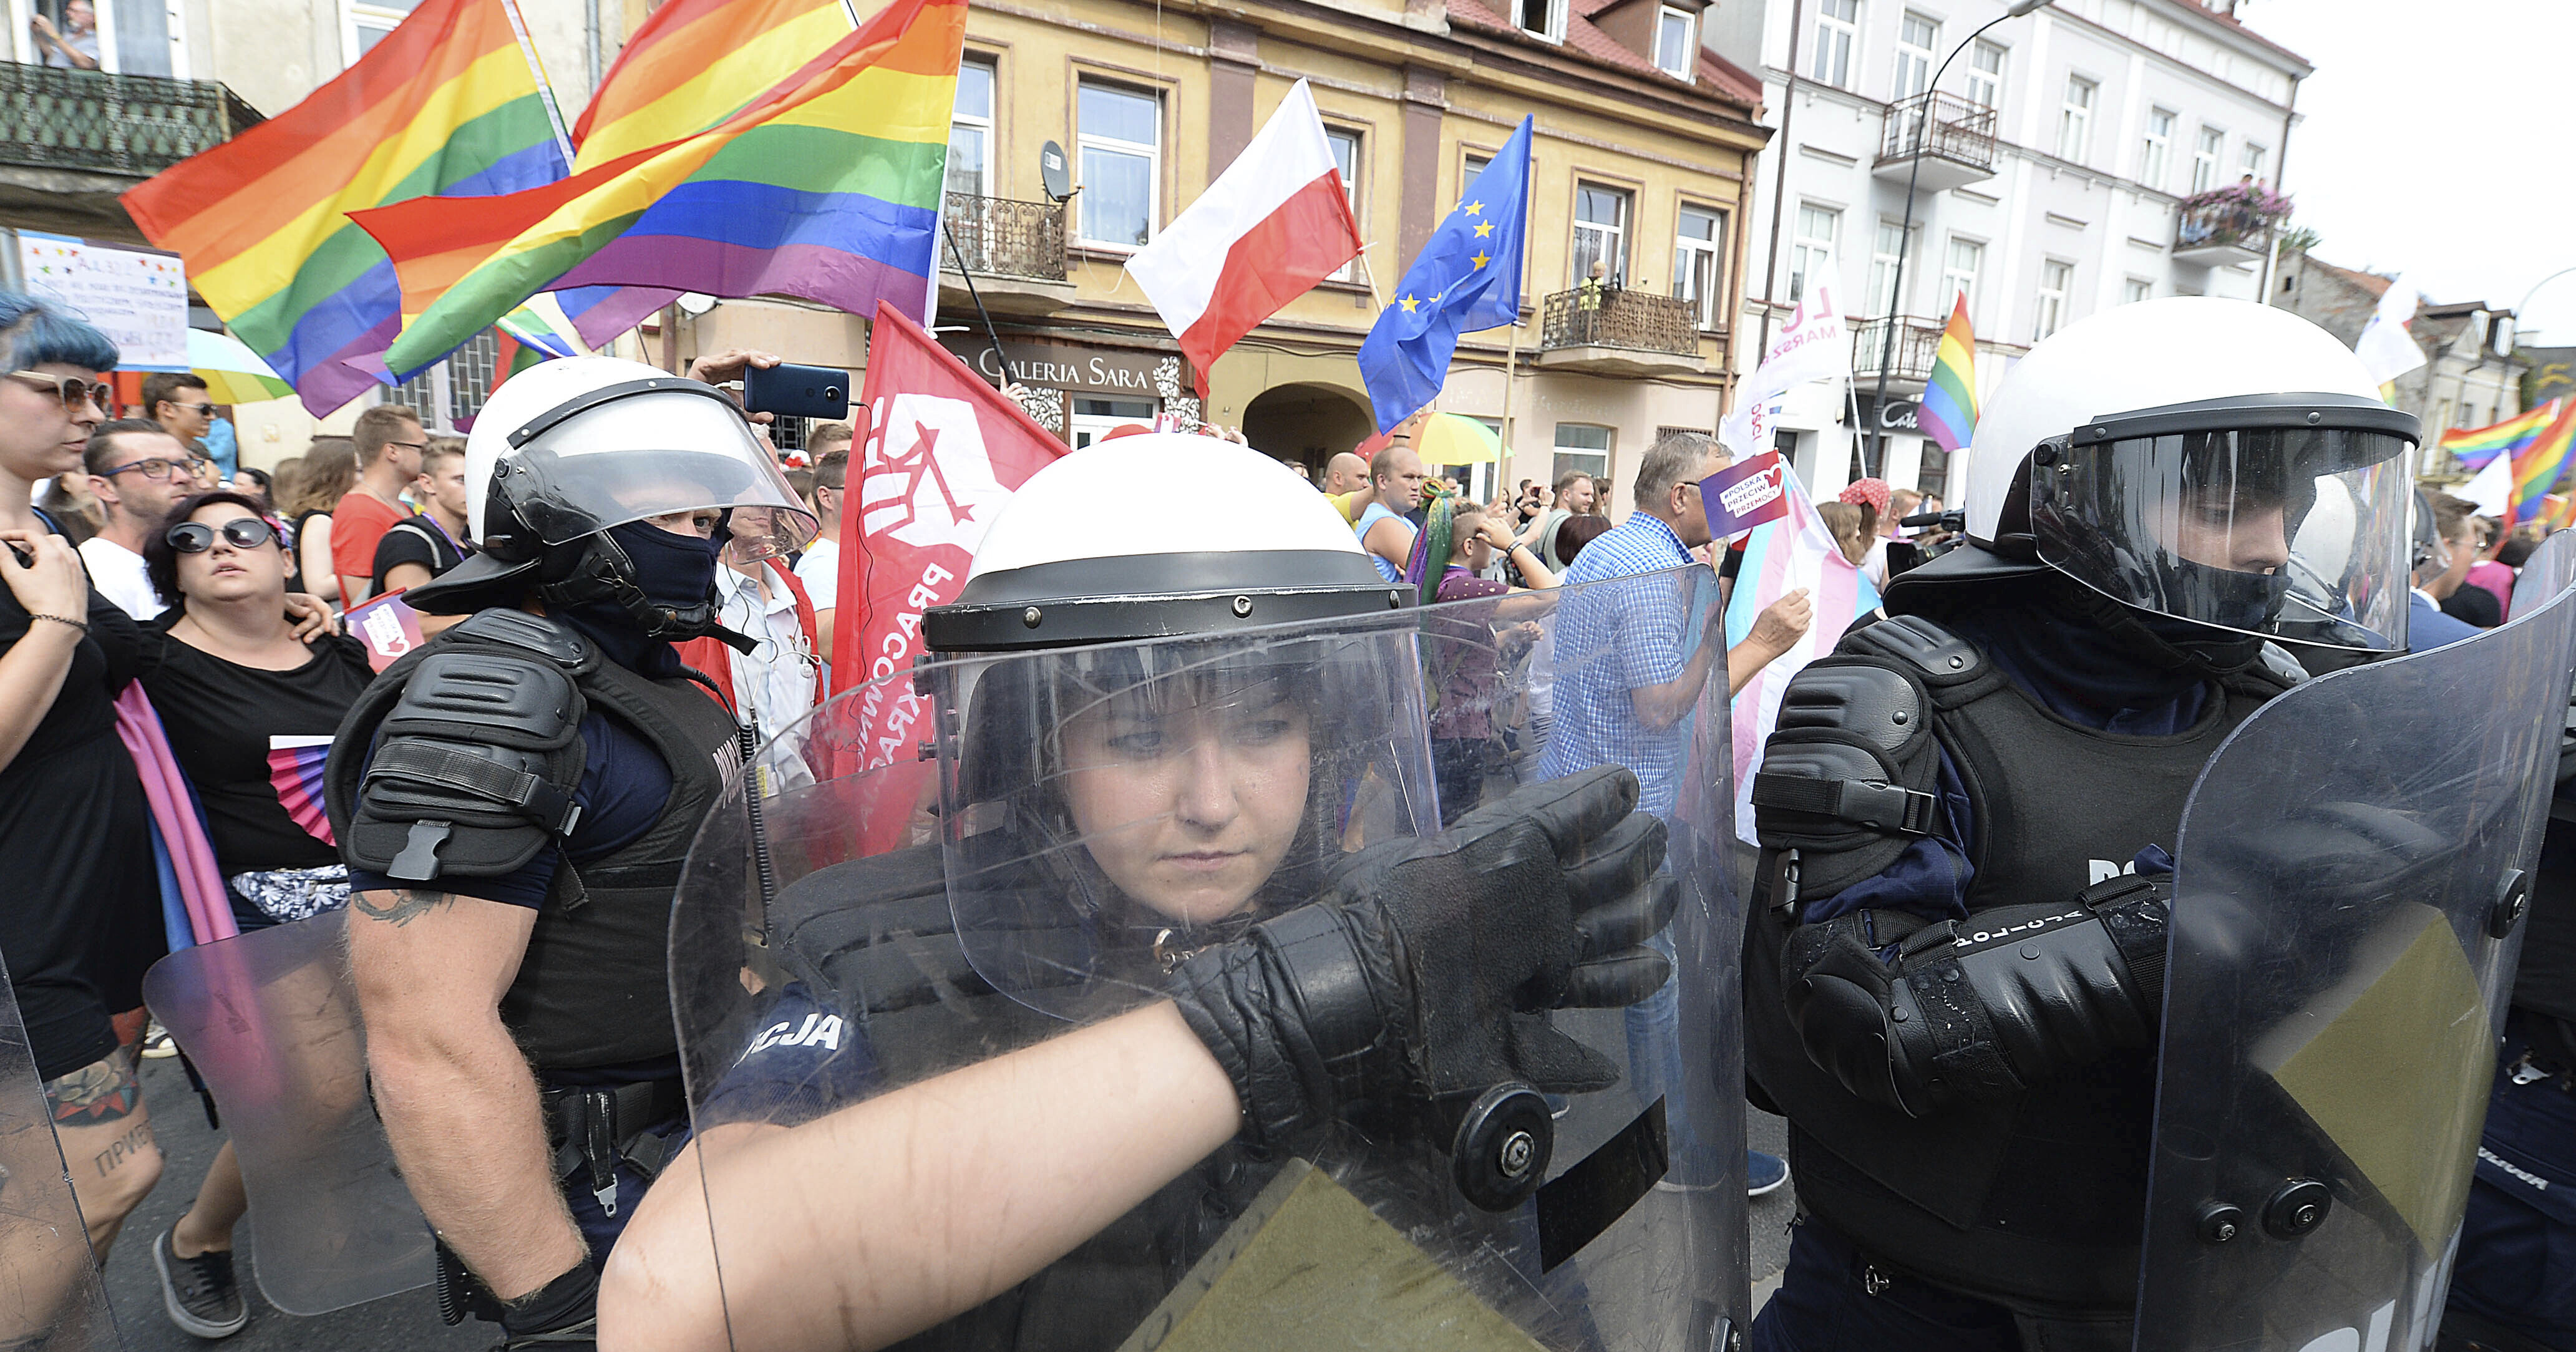 Recent Attacks on LGBTQ People in Poland